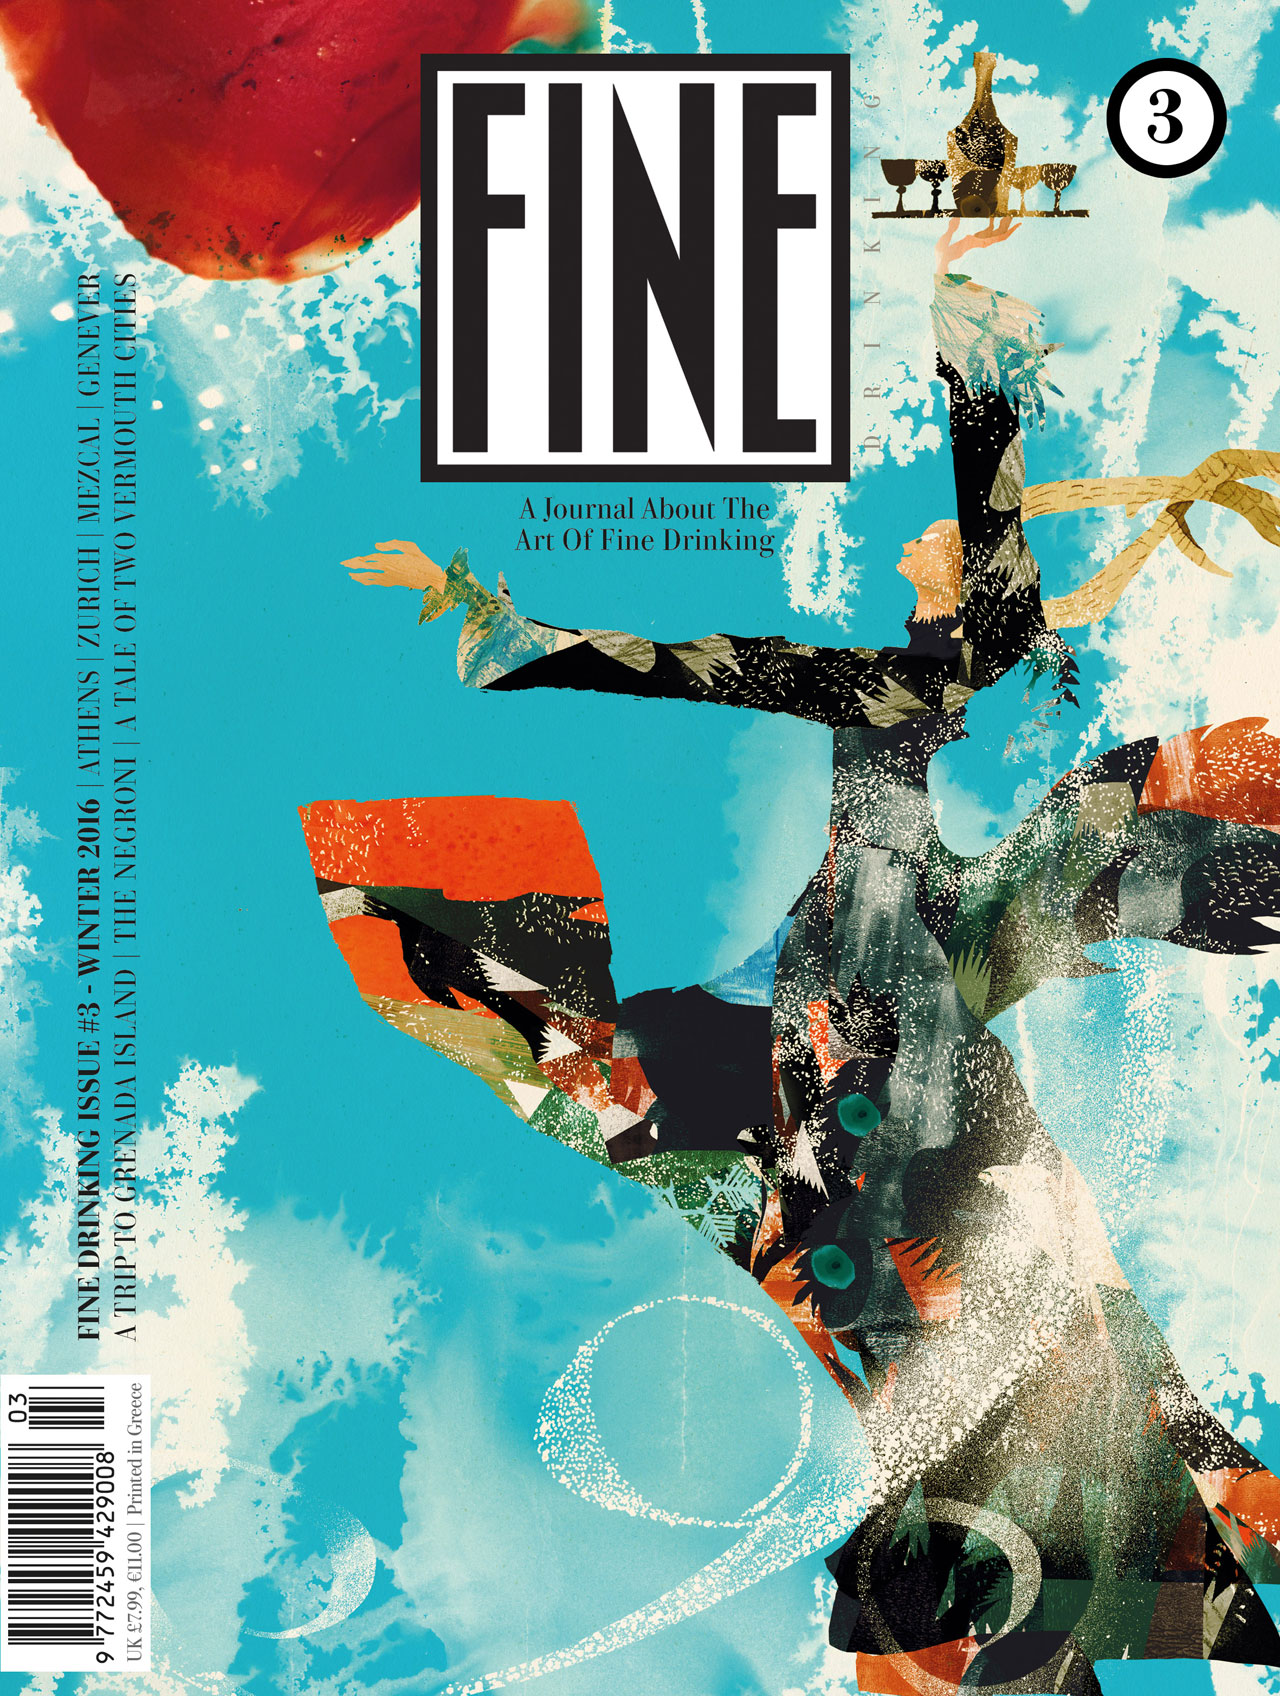 FINE DRINKING, issue #3.Cover illustrated by Daniel Egneus.